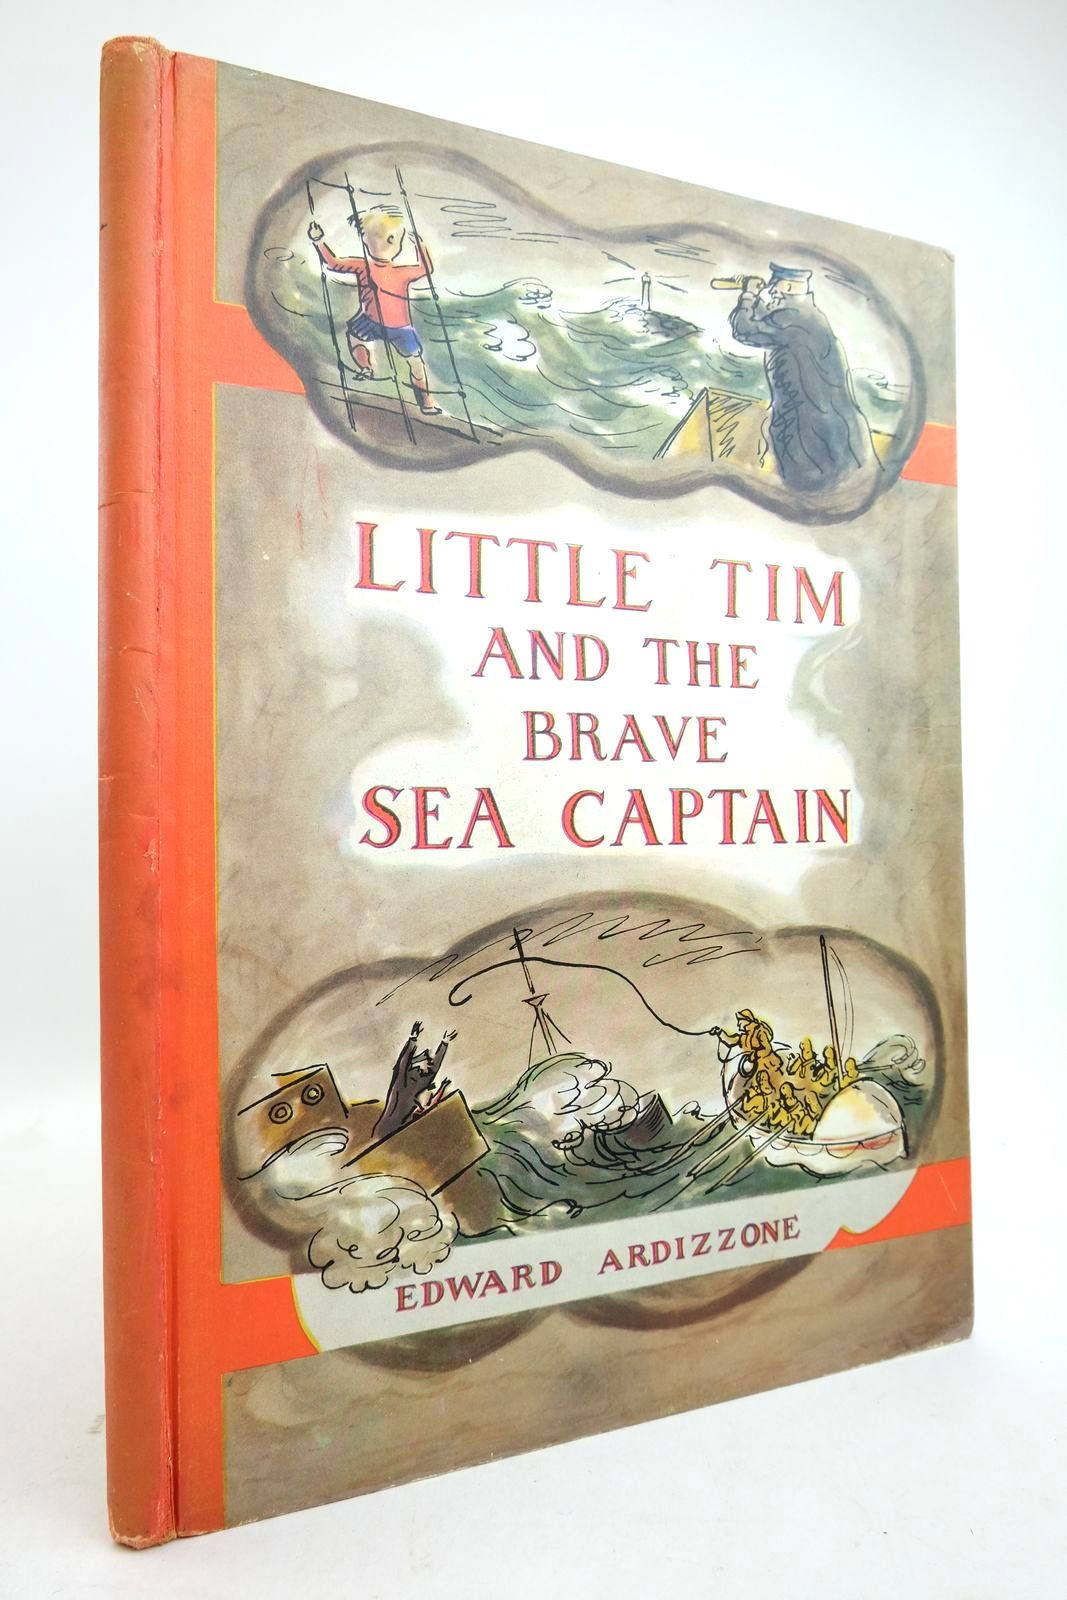 Photo of LITTLE TIM AND THE BRAVE SEA CAPTAIN written by Ardizzone, Edward illustrated by Ardizzone, Edward published by Oxford University Press (STOCK CODE: 2134788)  for sale by Stella & Rose's Books